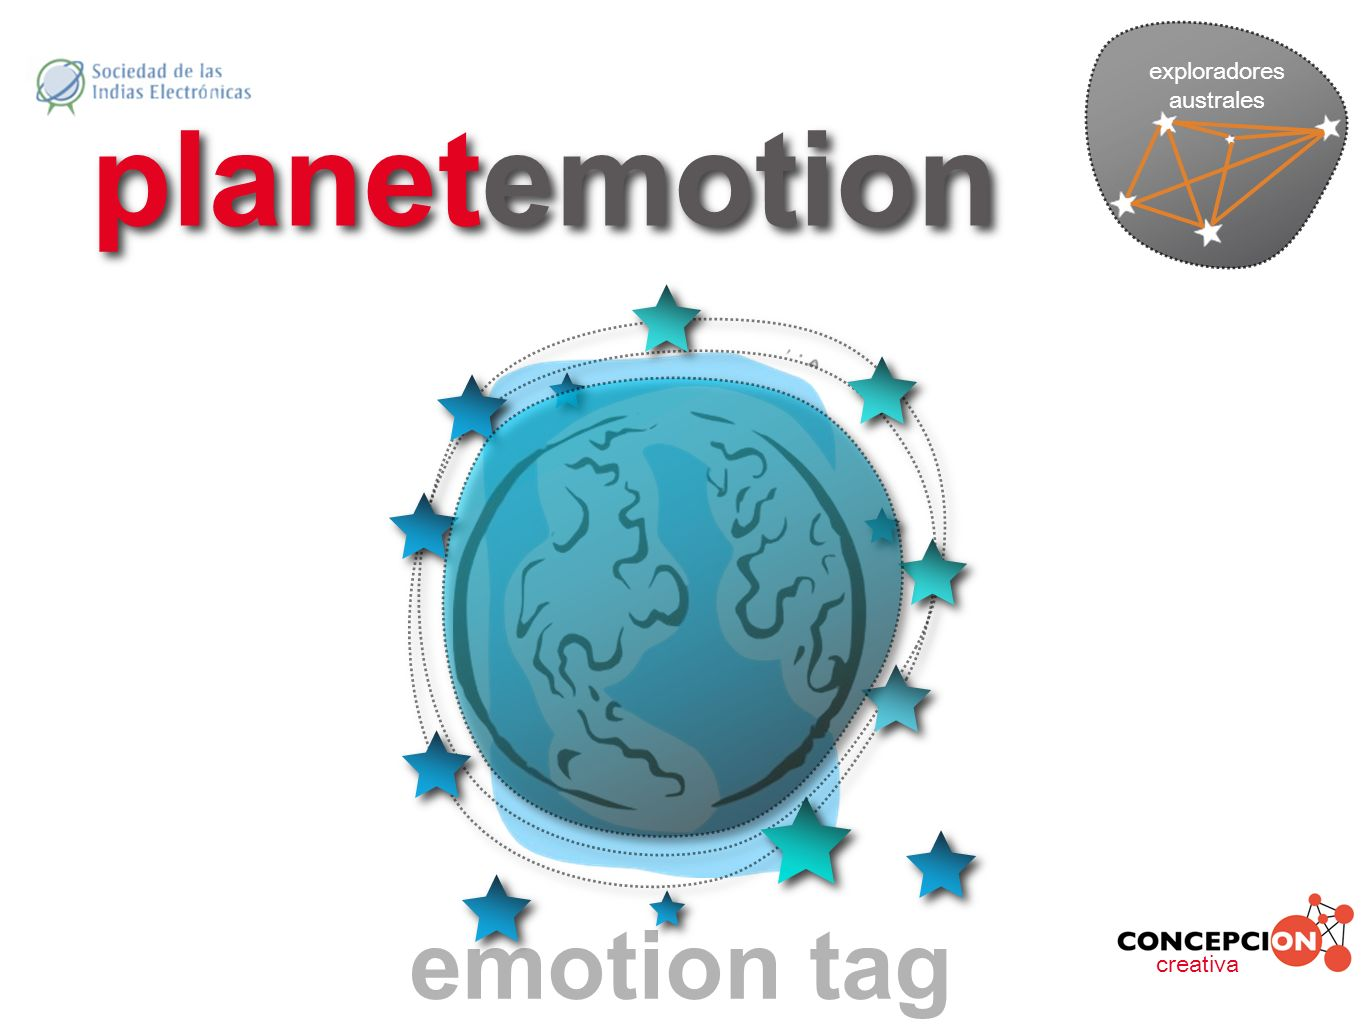 creativa exploradores australes emotion tag planetemotion